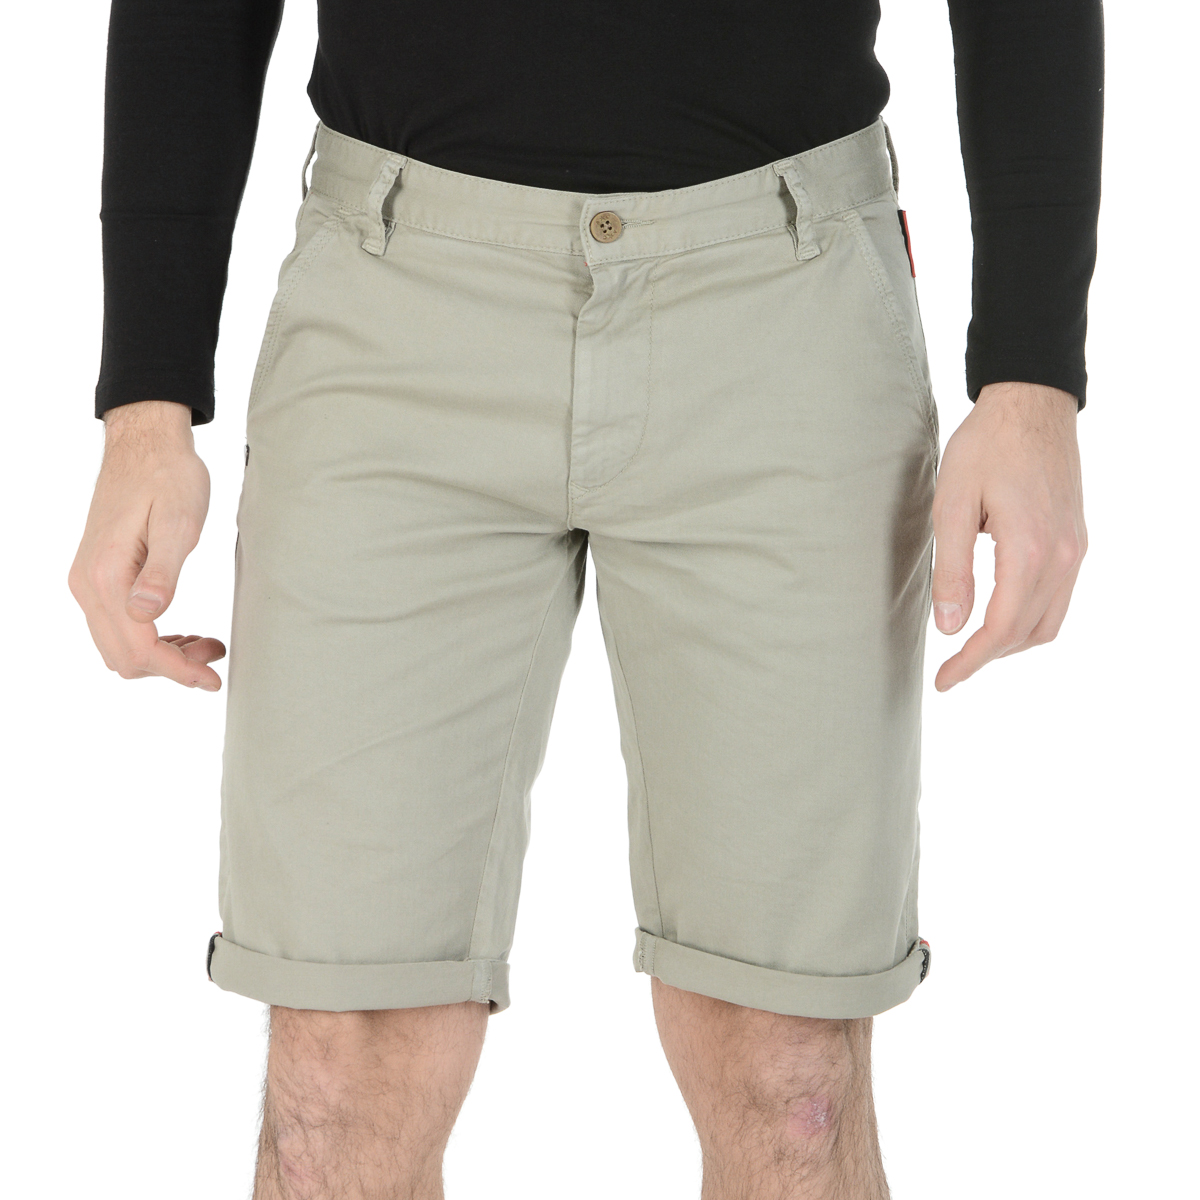 Primary image for Andrew Charles Mens Shorts Taupe SADECK